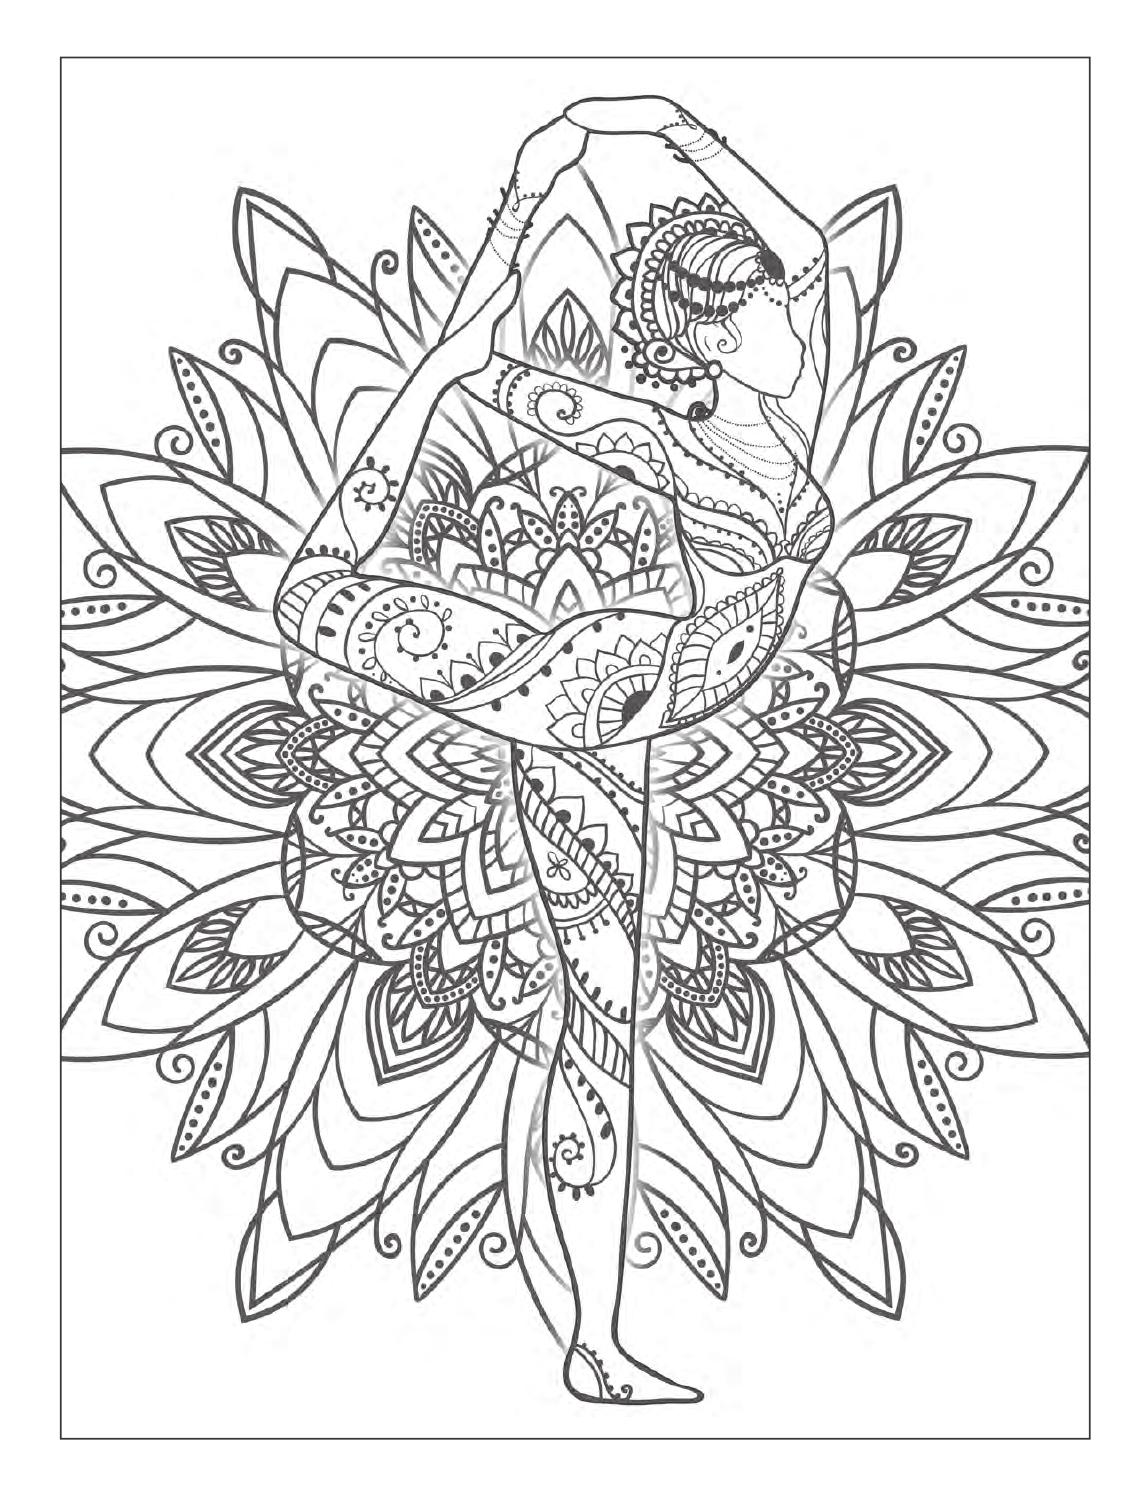 alexandru coloring pages - photo#16